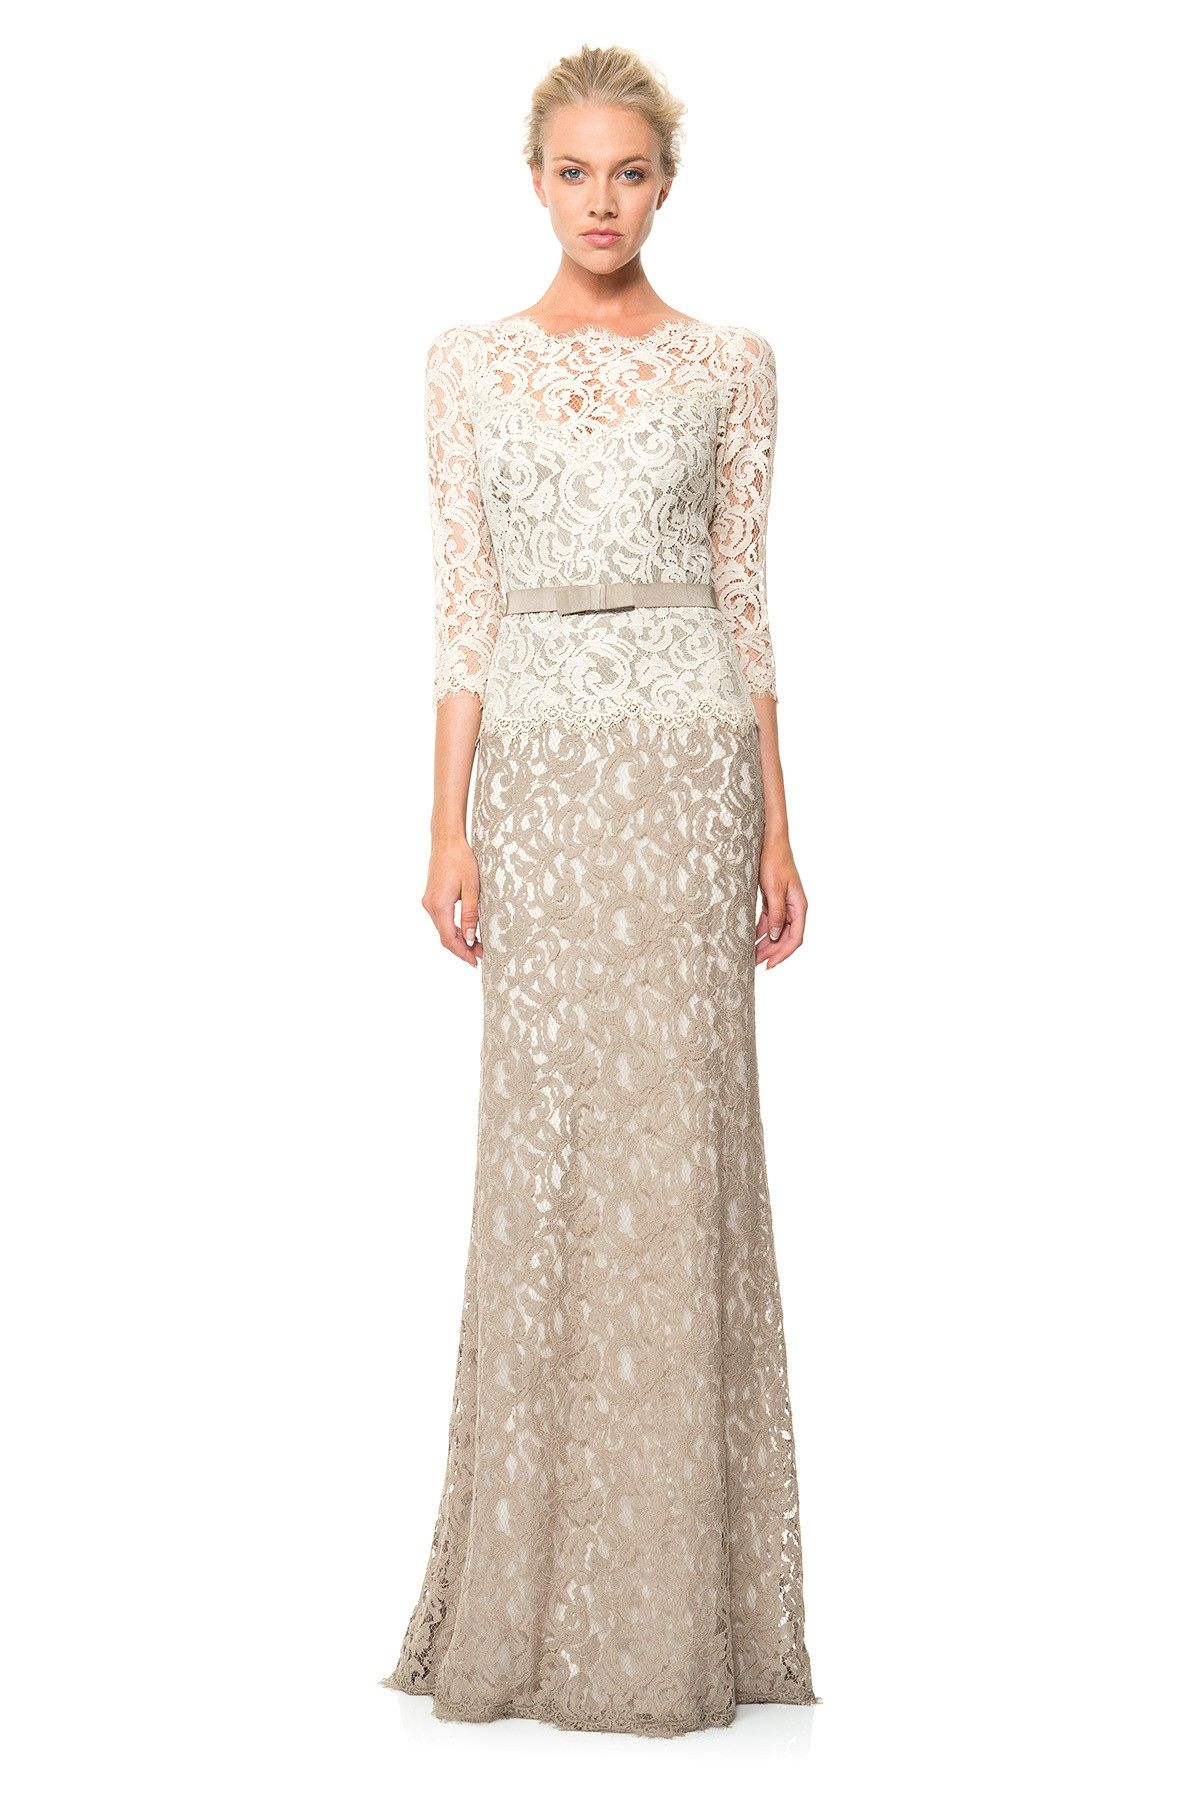 Dresses For 50th Wedding Anniversary Reception Check More At Http Svesty